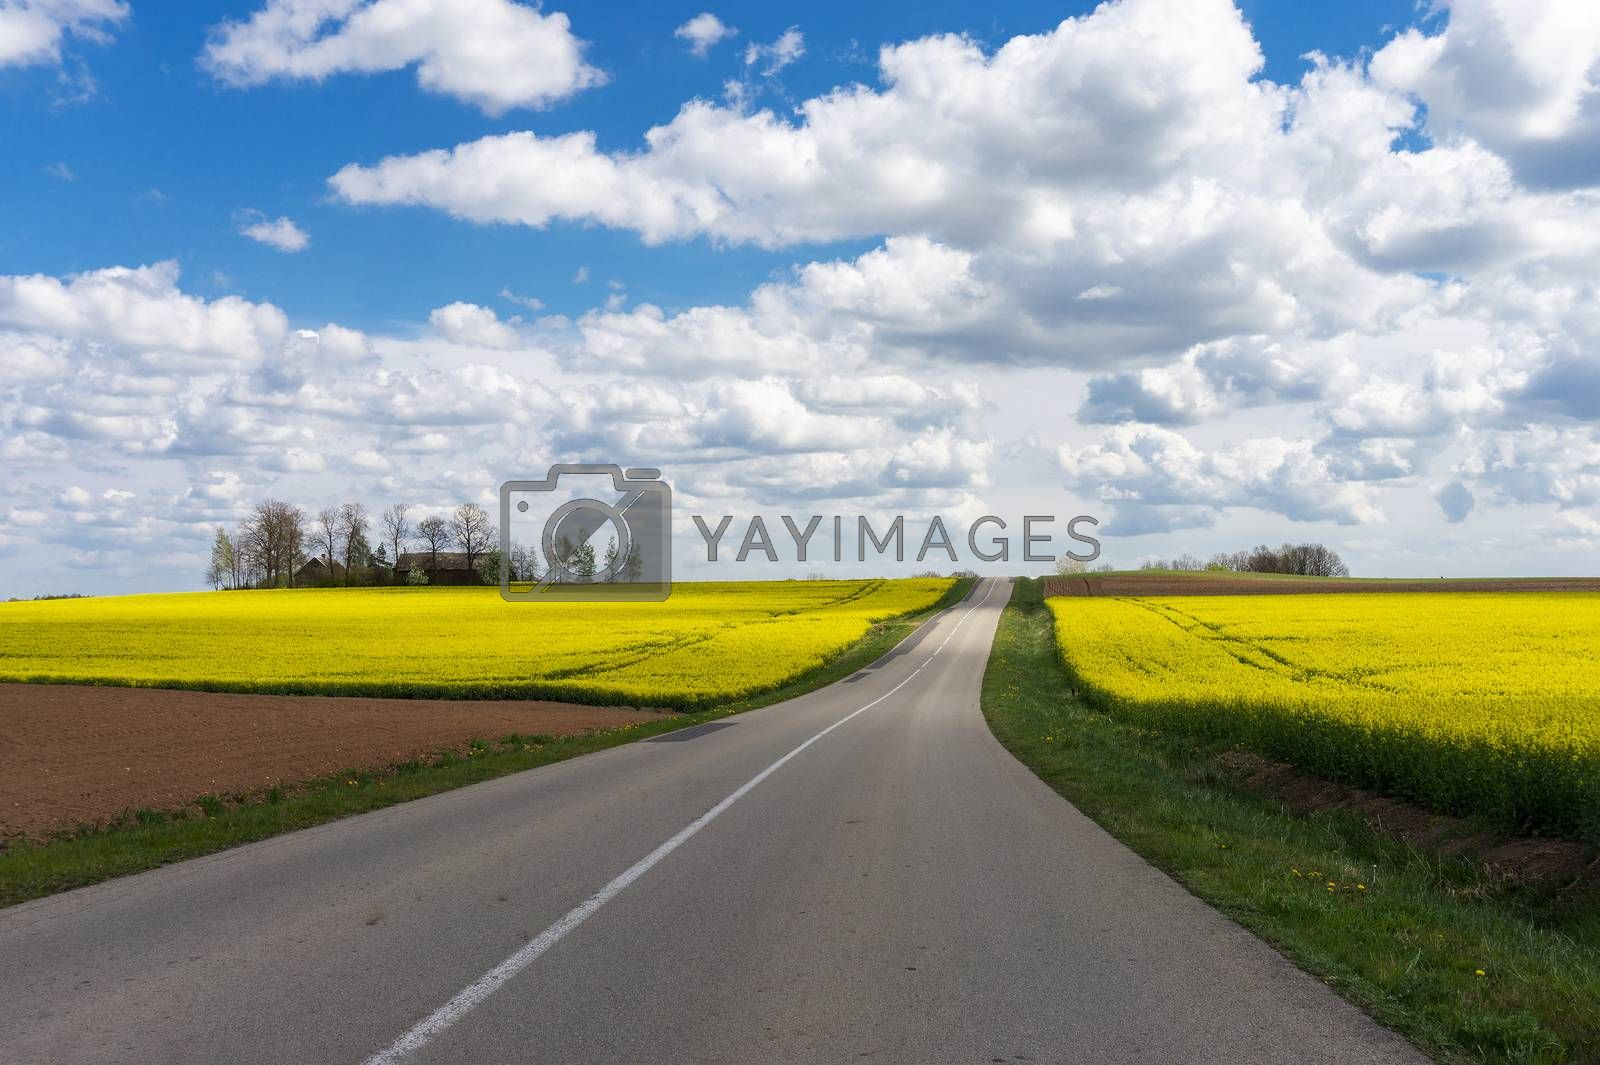 Empty asphalt road through picturesque countryside landscape with beautiful yellow fields under the blue sky with white clouds